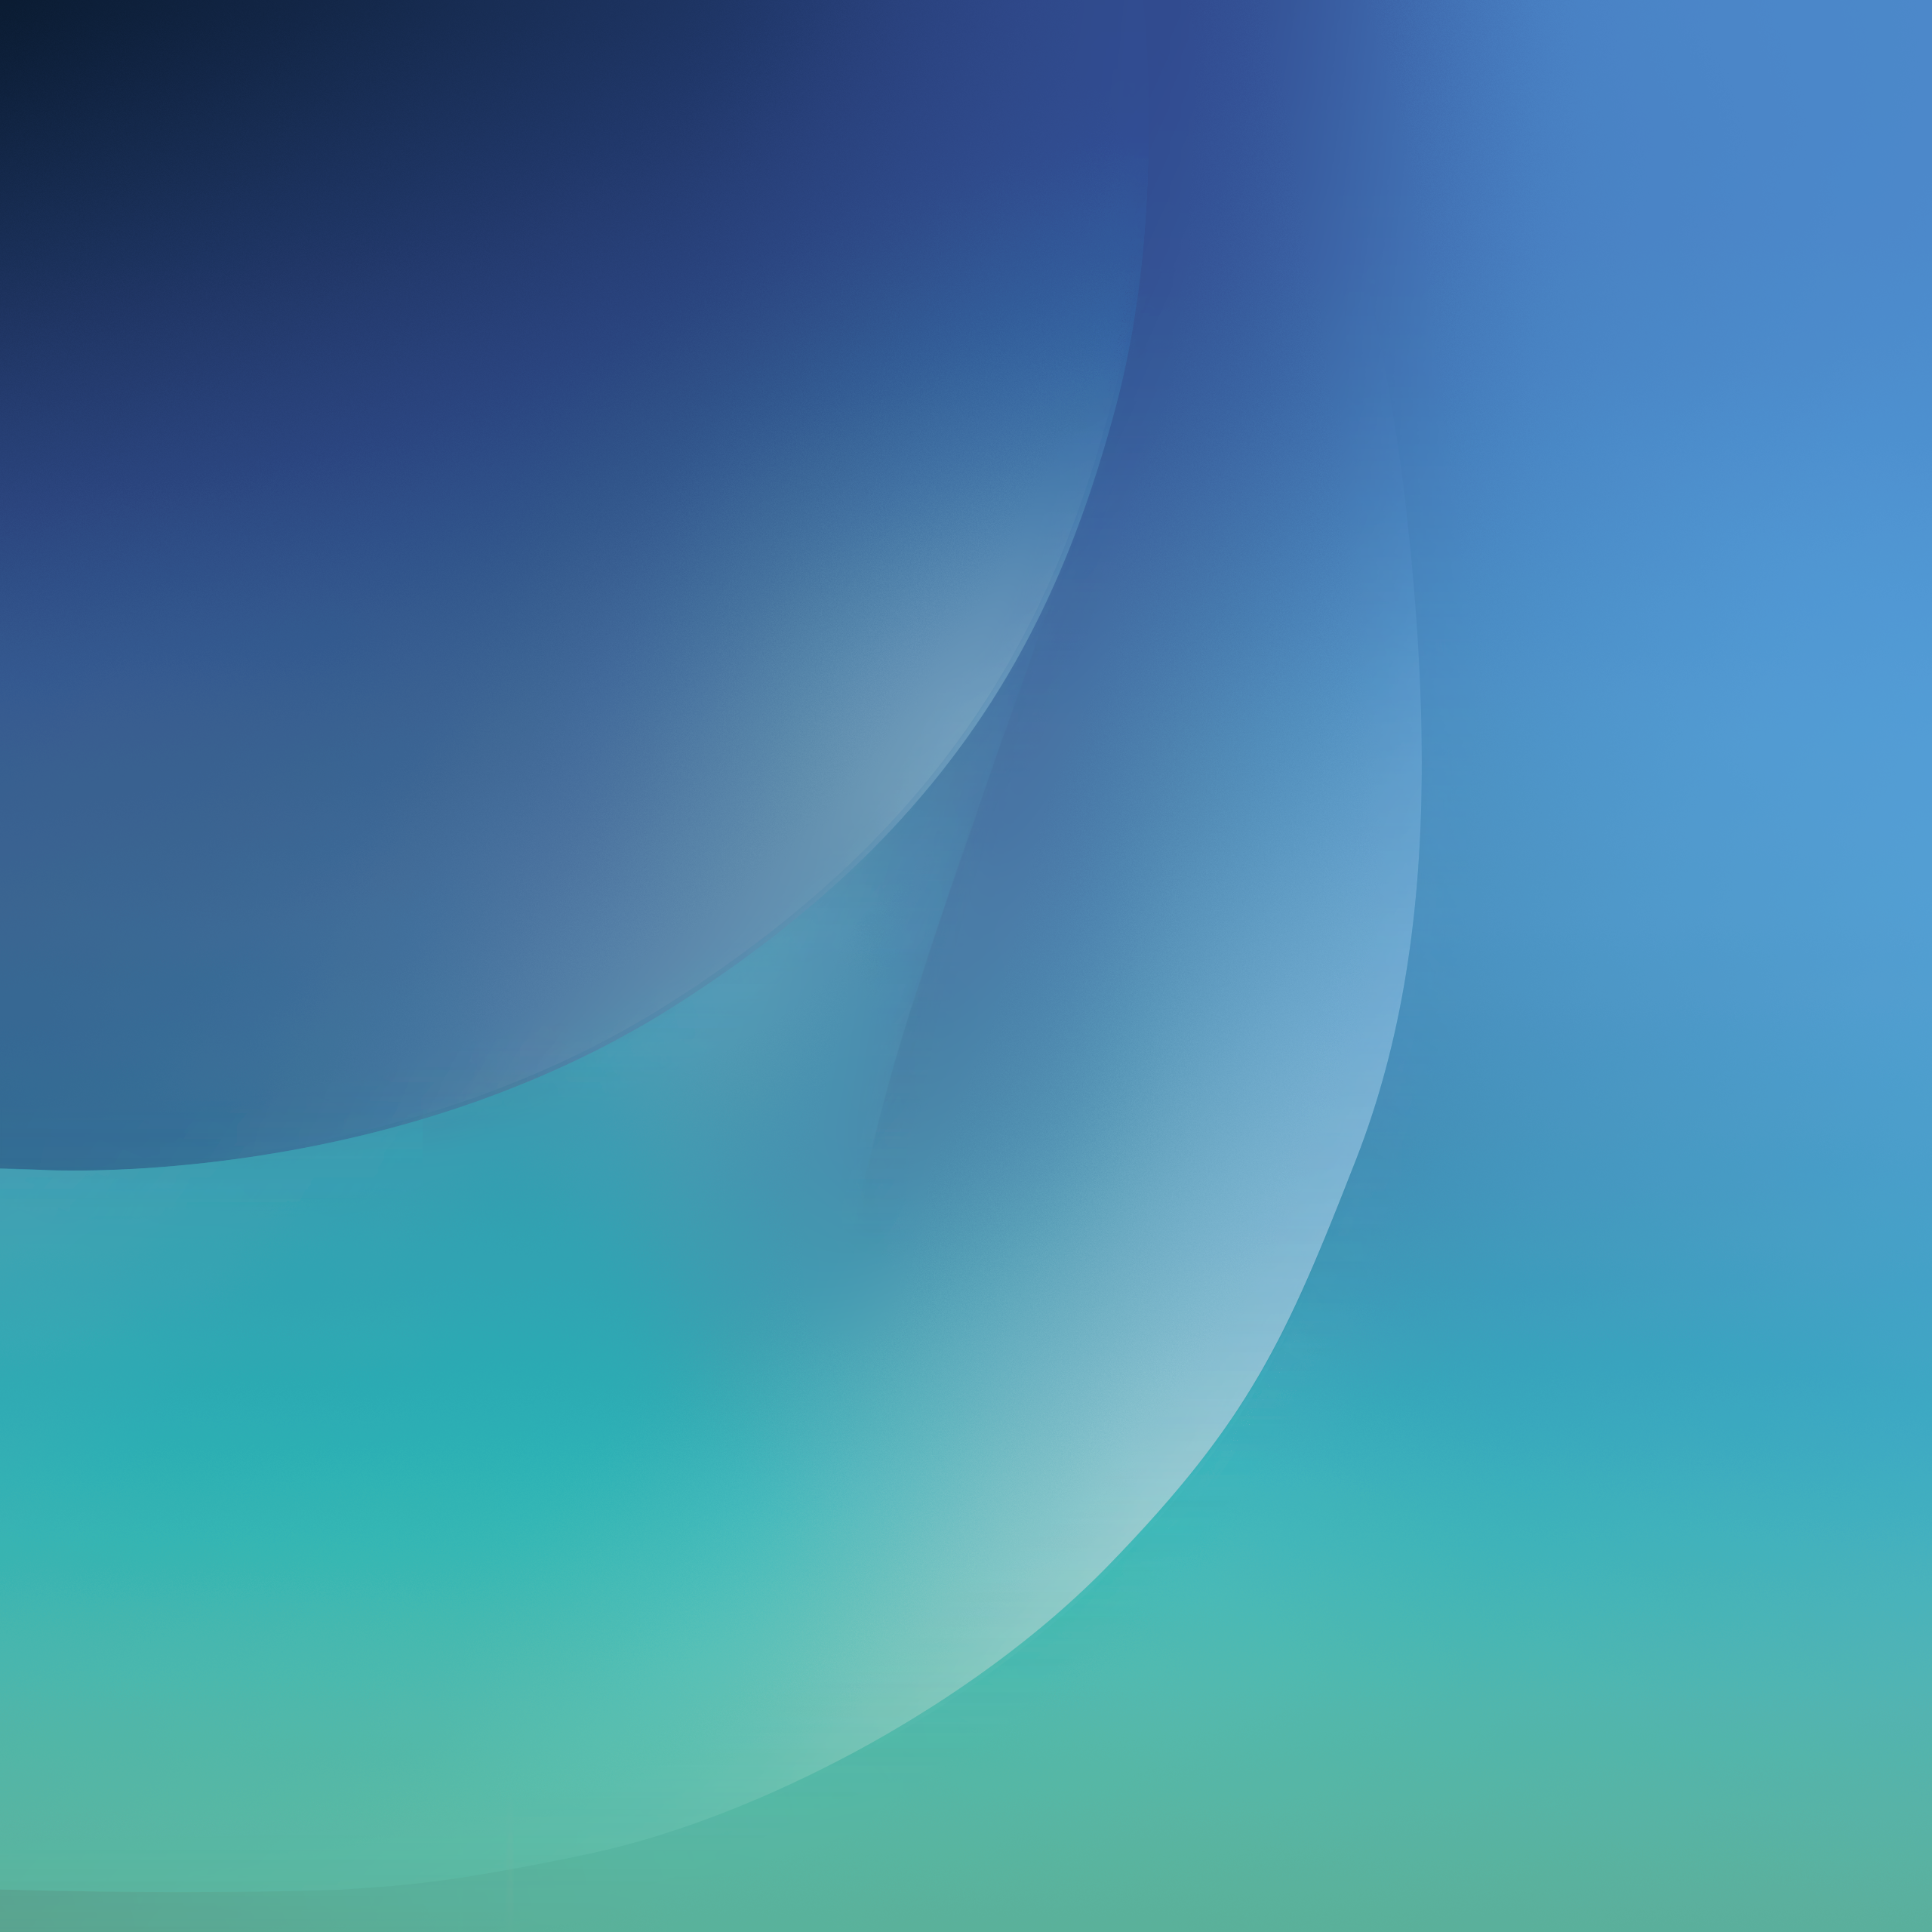 Wallpaper For Galaxy Note 5 Posted By Samantha Thompson